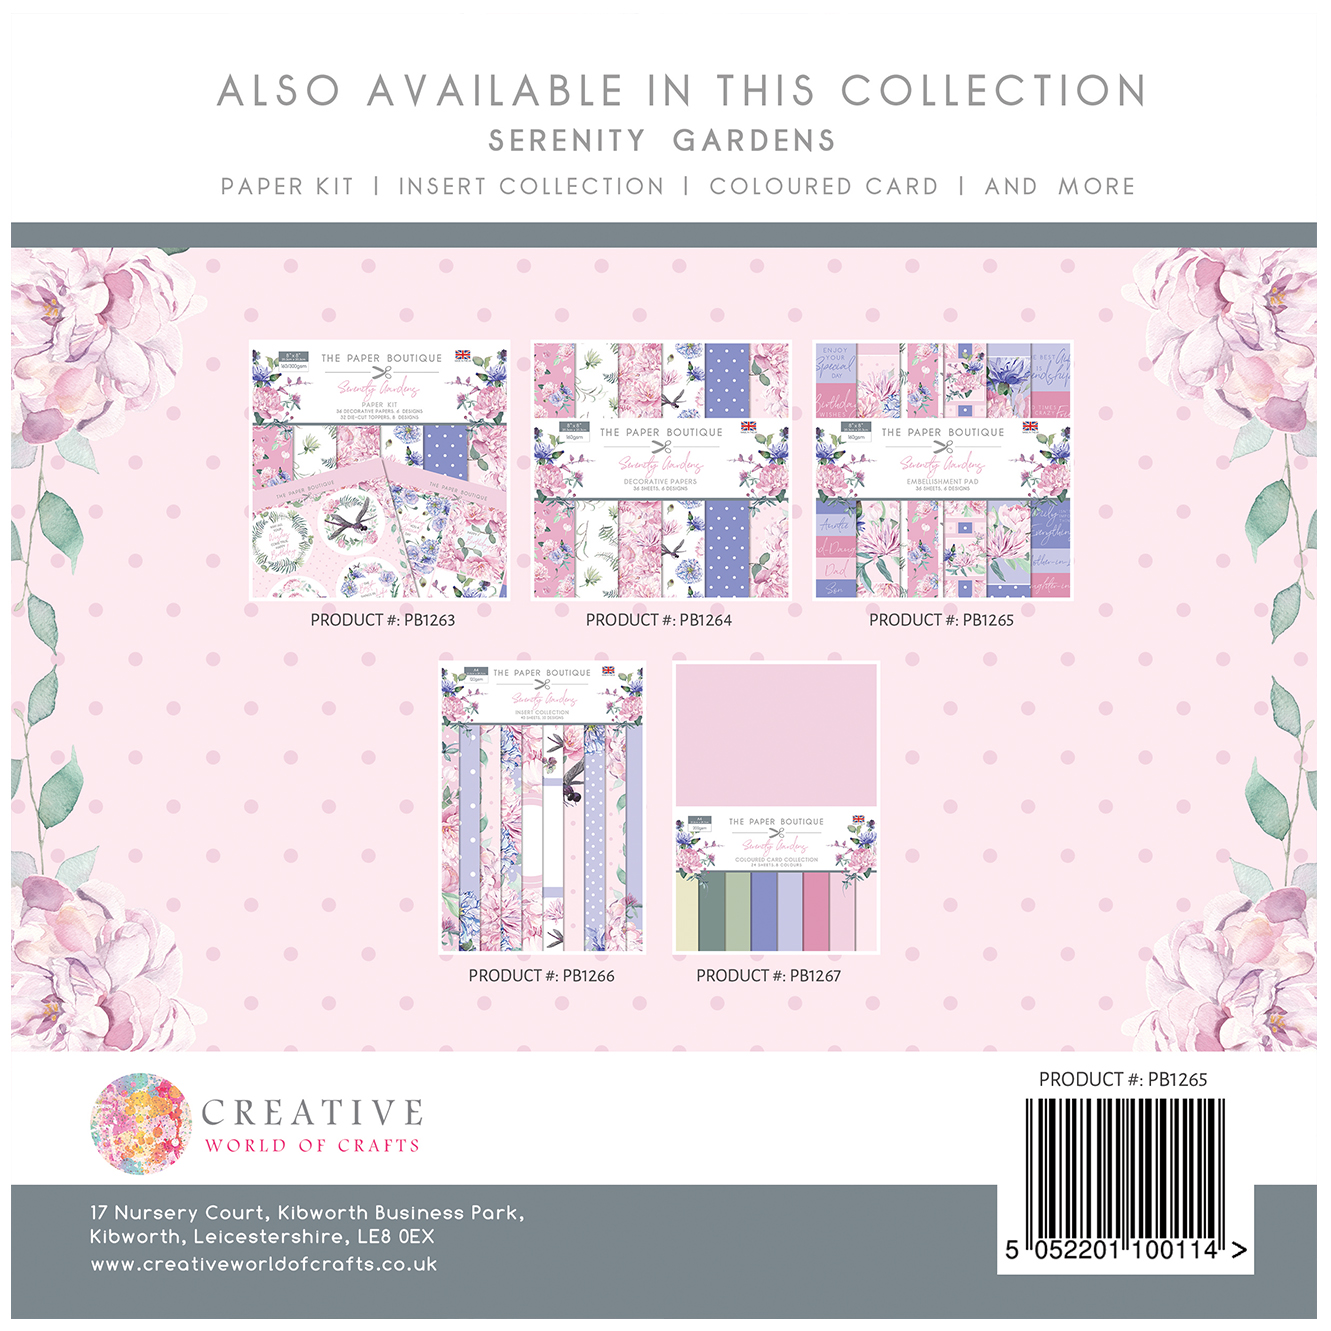 The Paper Boutique Serenity Gardens 8″ x 8″ Embellishment Pad